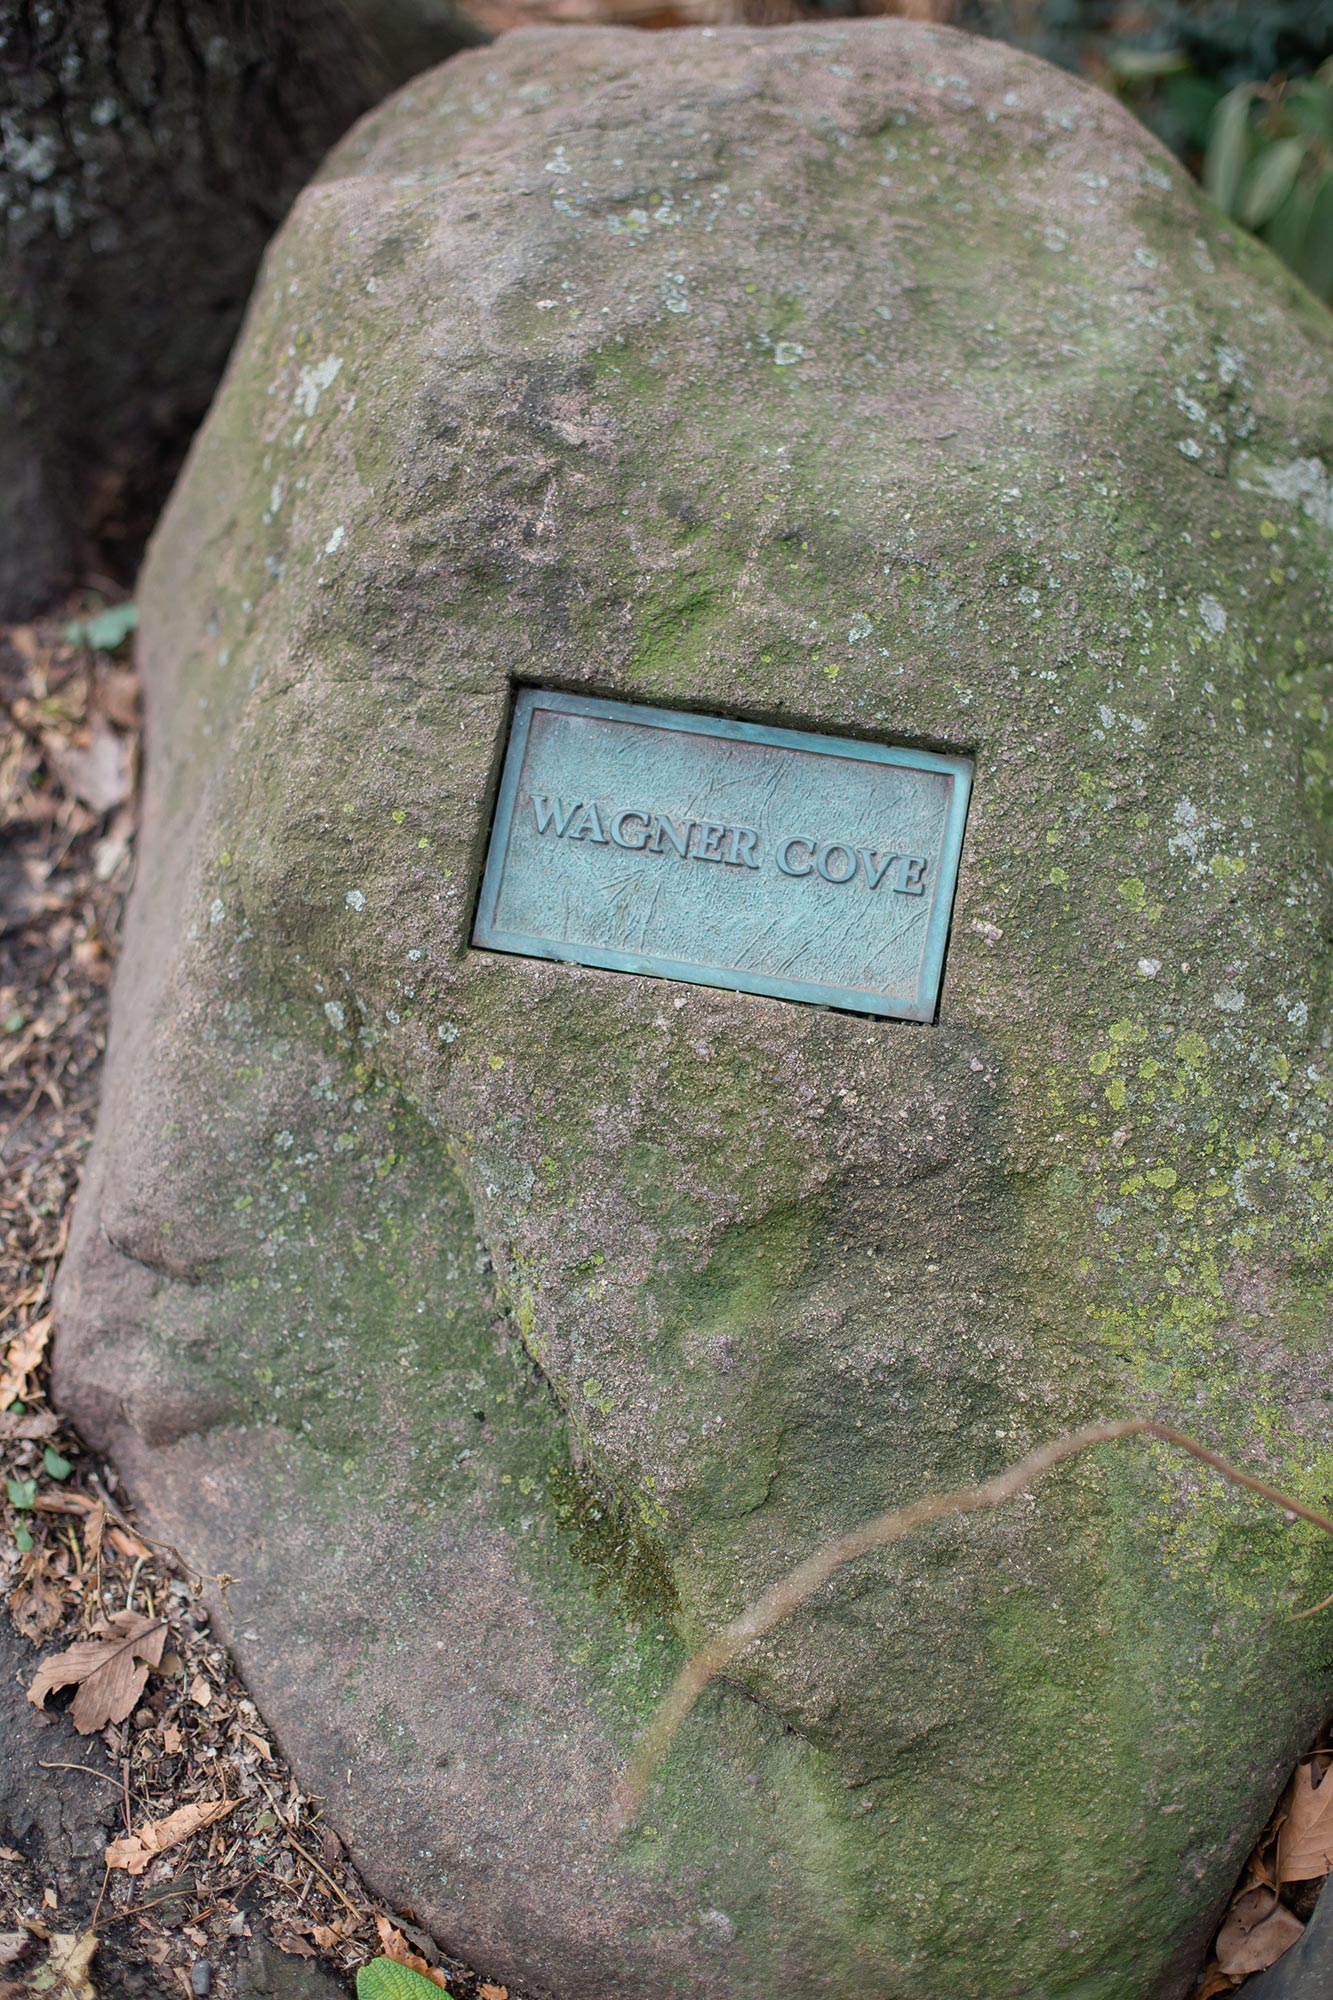 """queer irish central park winter elopement kate alison photography rock with inlaid plaque reading """"Wagner Cove"""""""